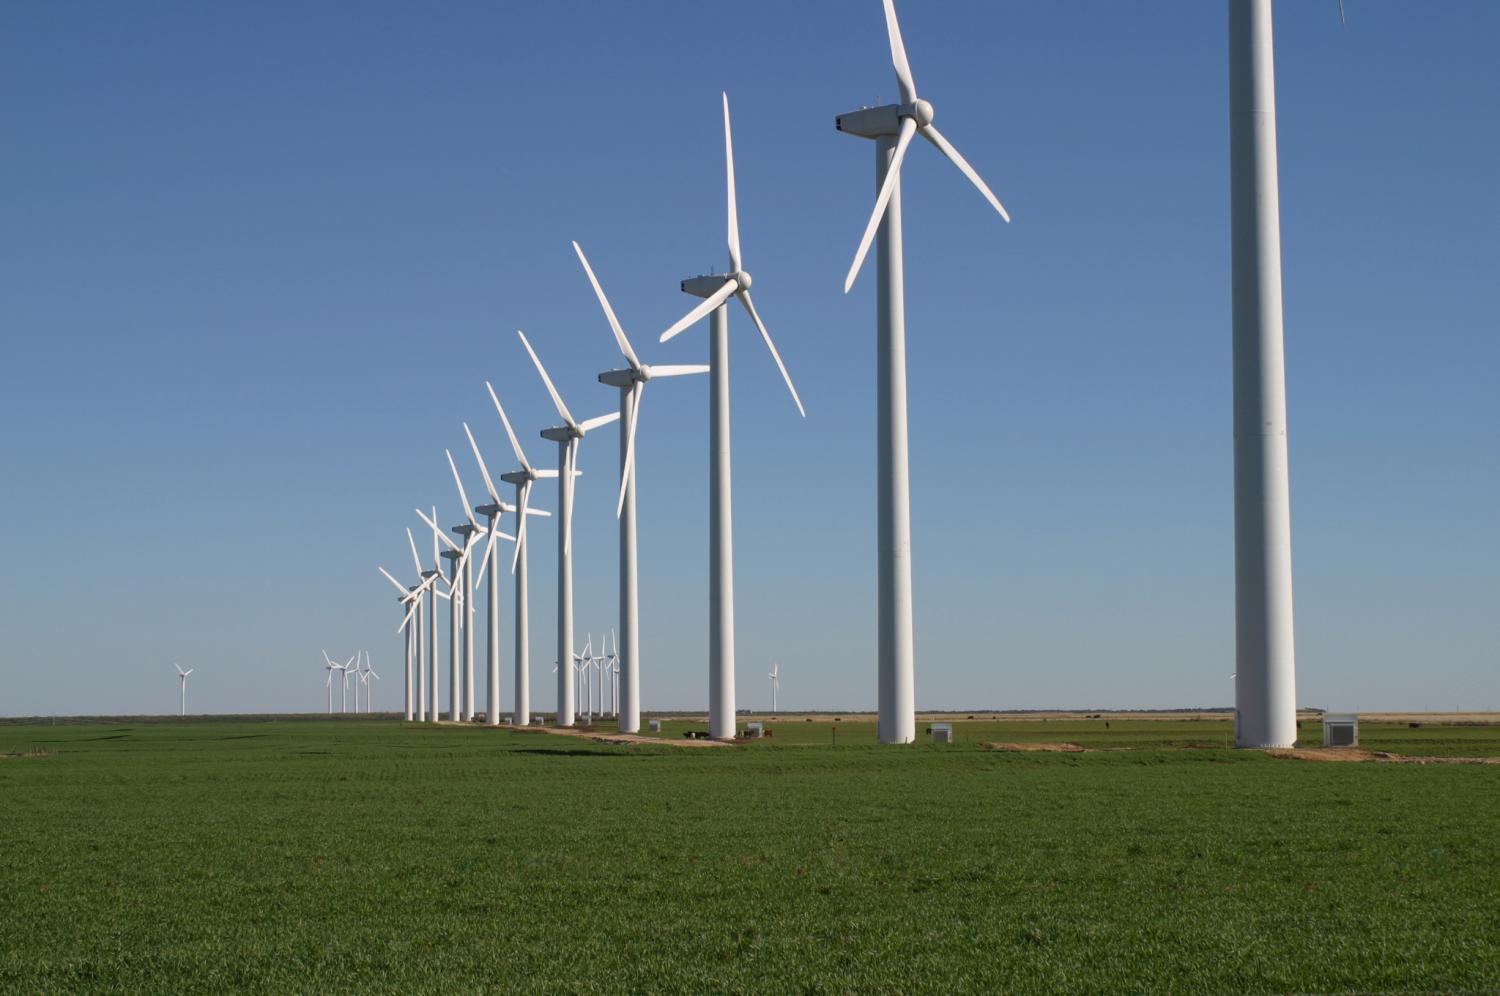 wind turbines could cover 40 percent of the current electricity